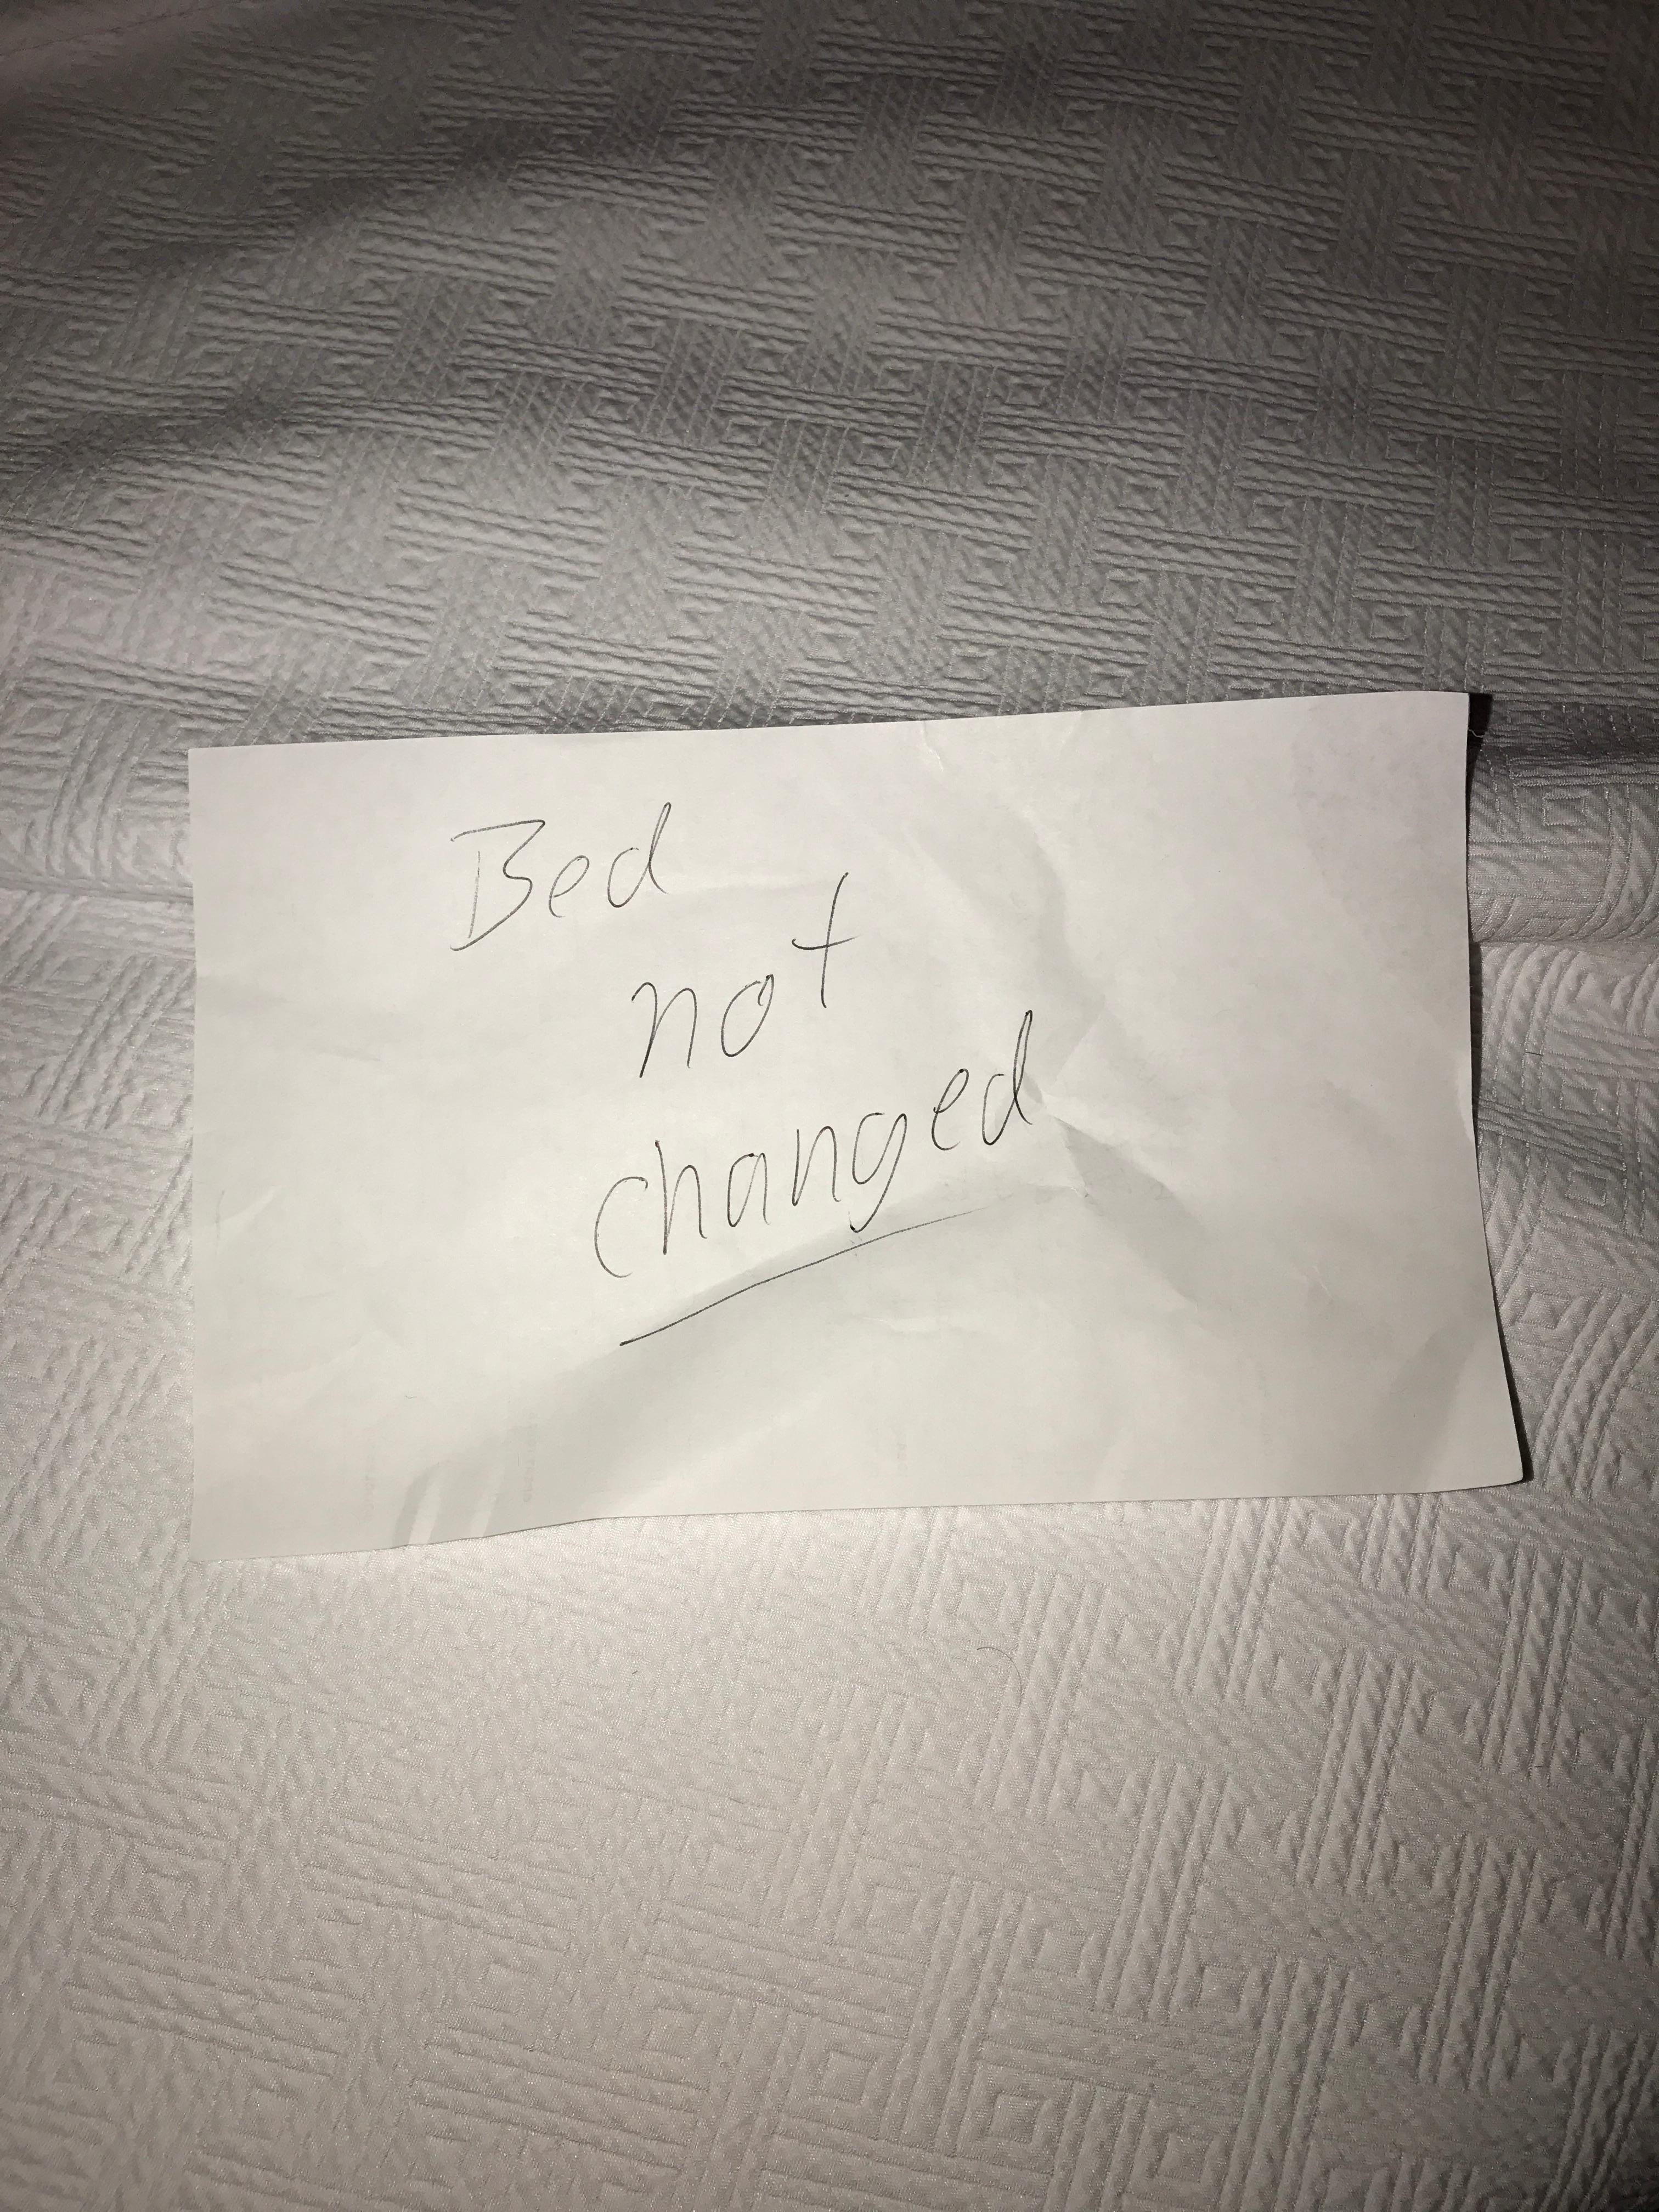 Note left in sheets by last guest - Disguting!